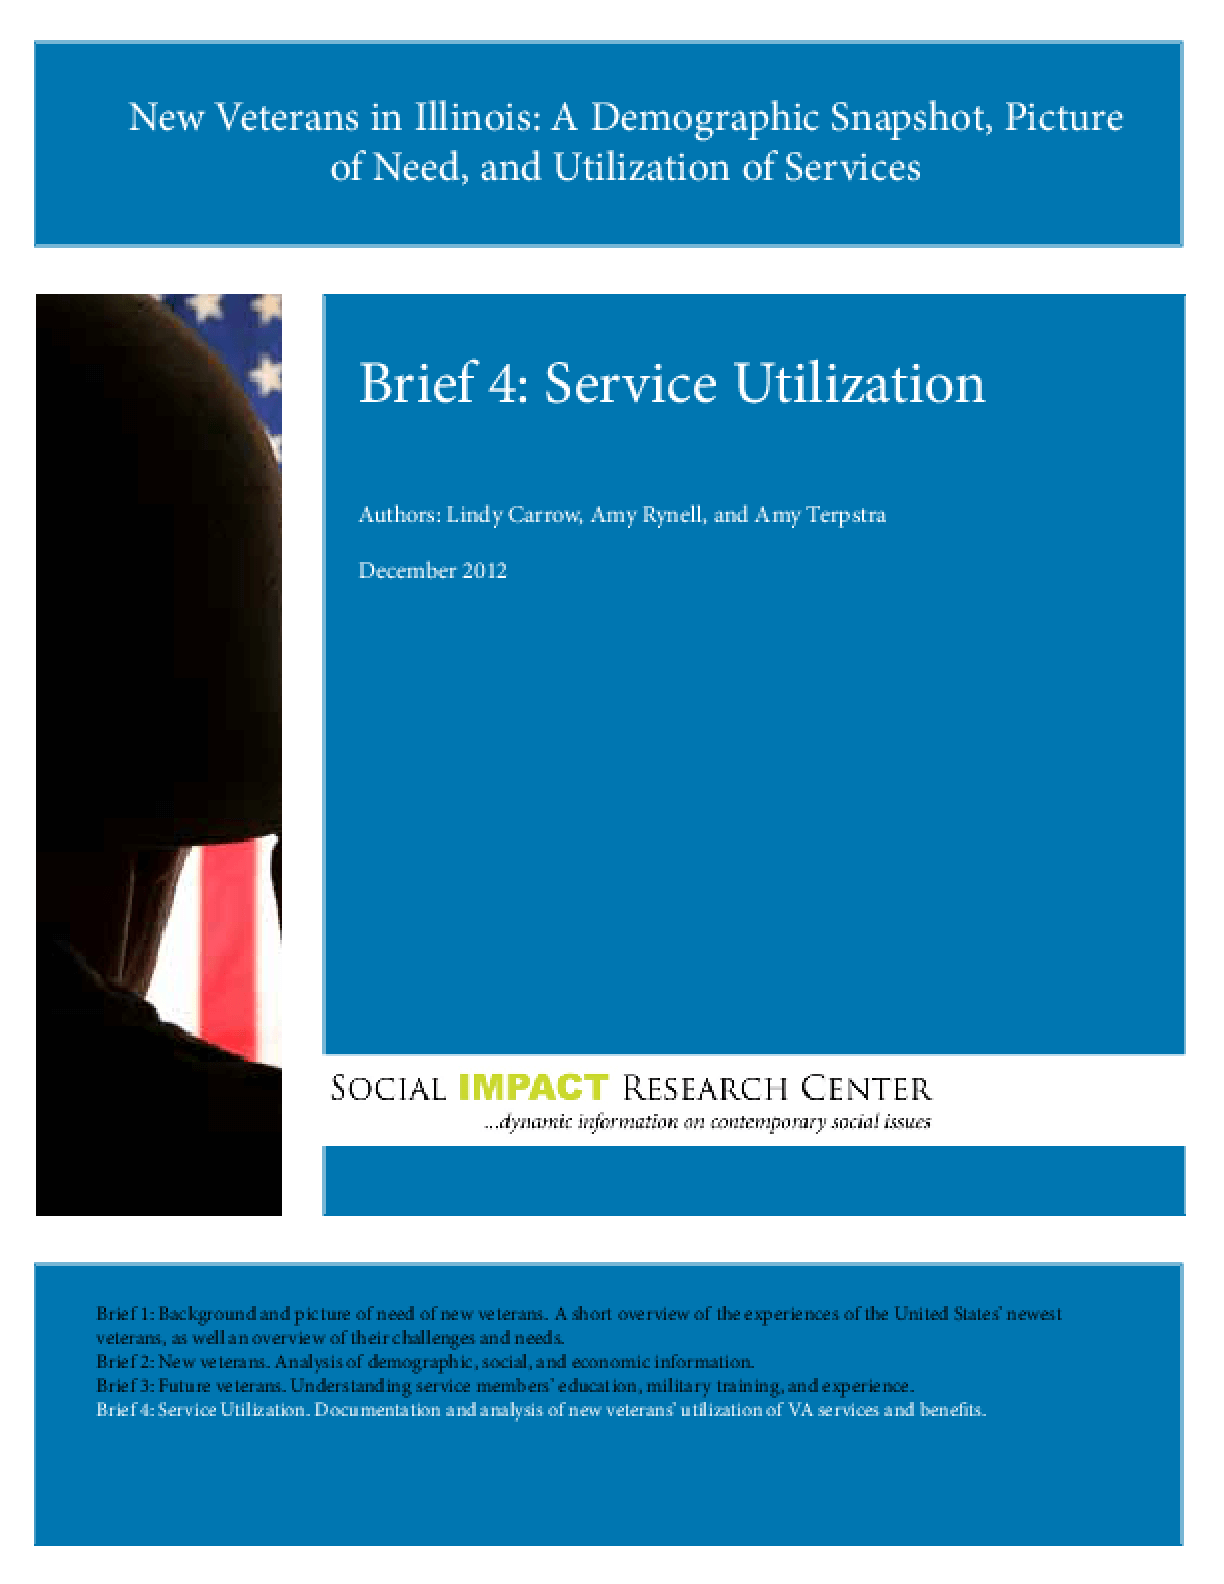 New Veterans in Illinois: Brief 4, Service Utilization